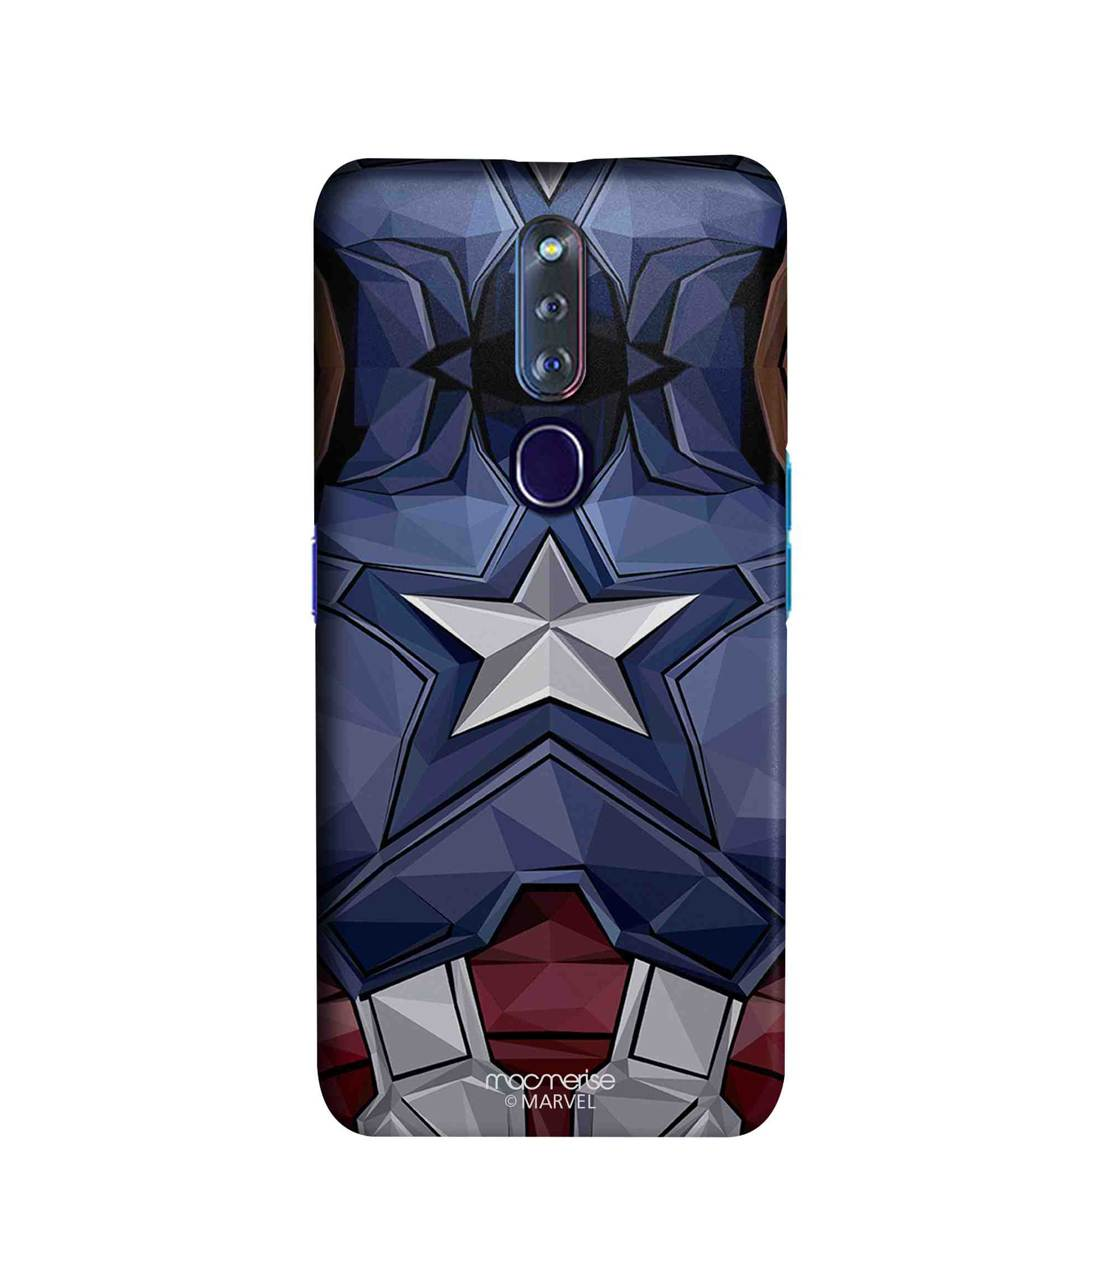 Captain America Vintage Suit - Sleek Phone Case for Oppo F11 Pro